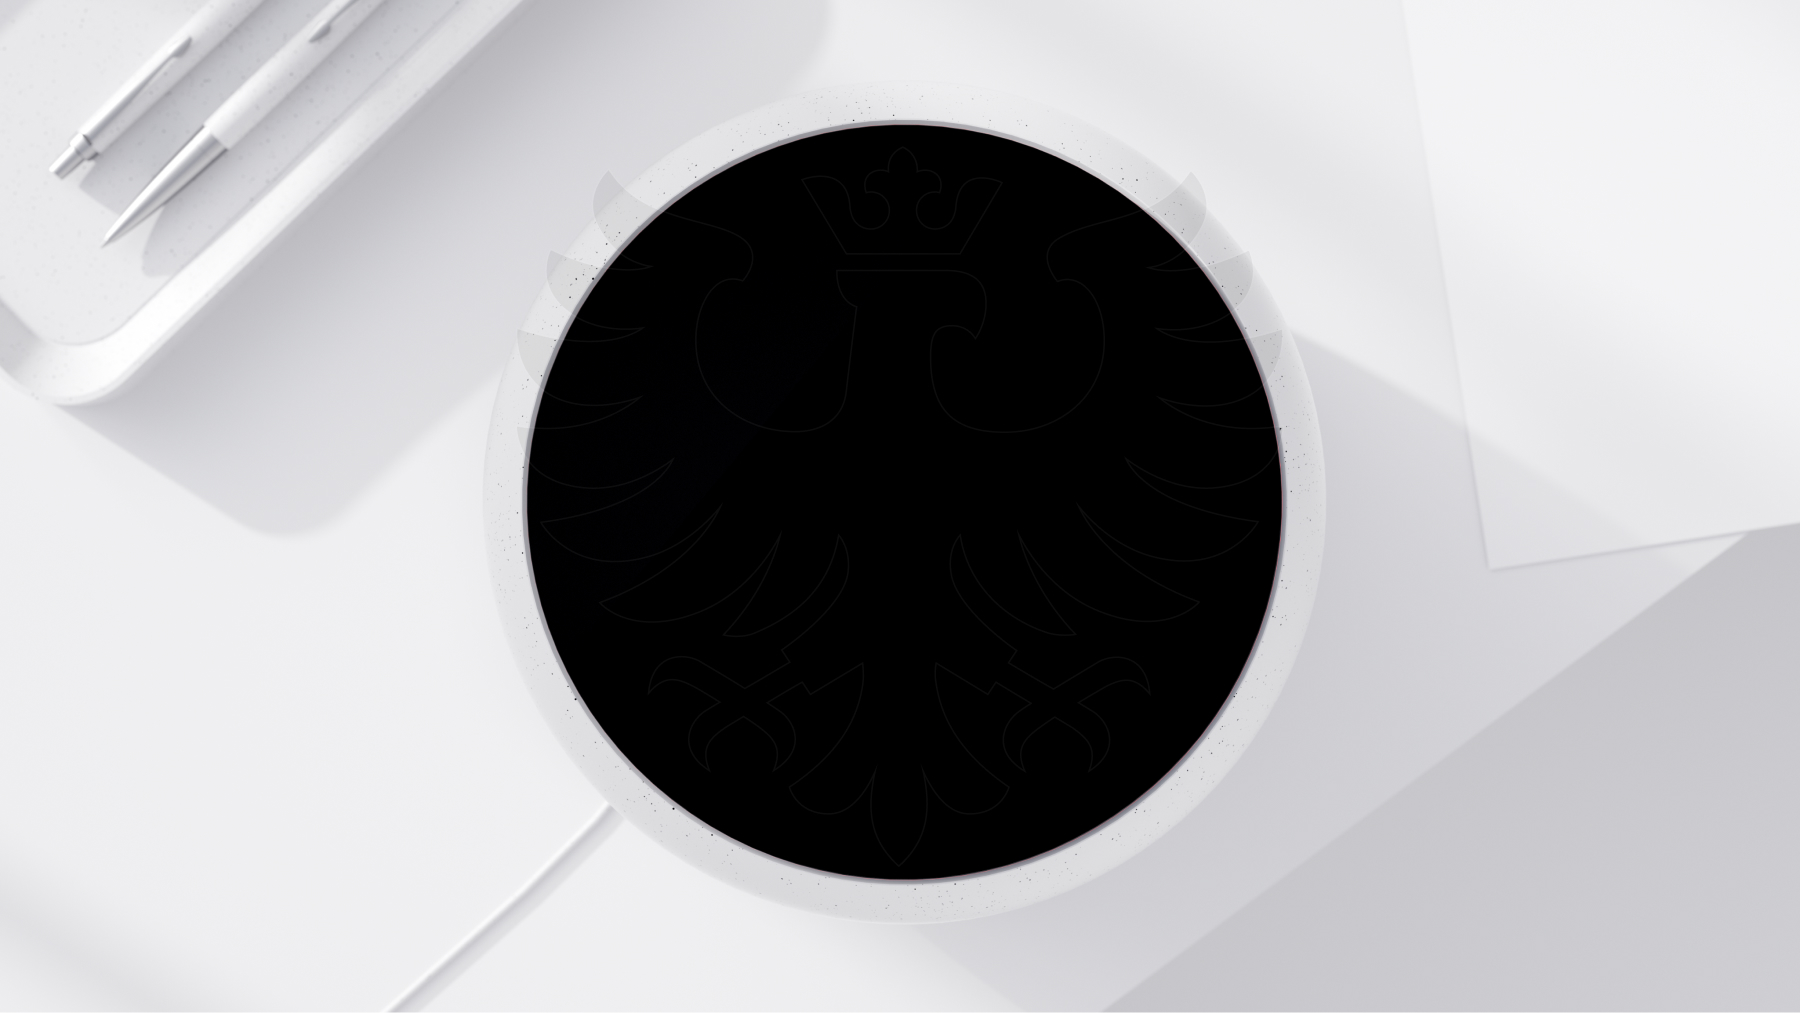 Essential-Preview-01-Supply-homedevice